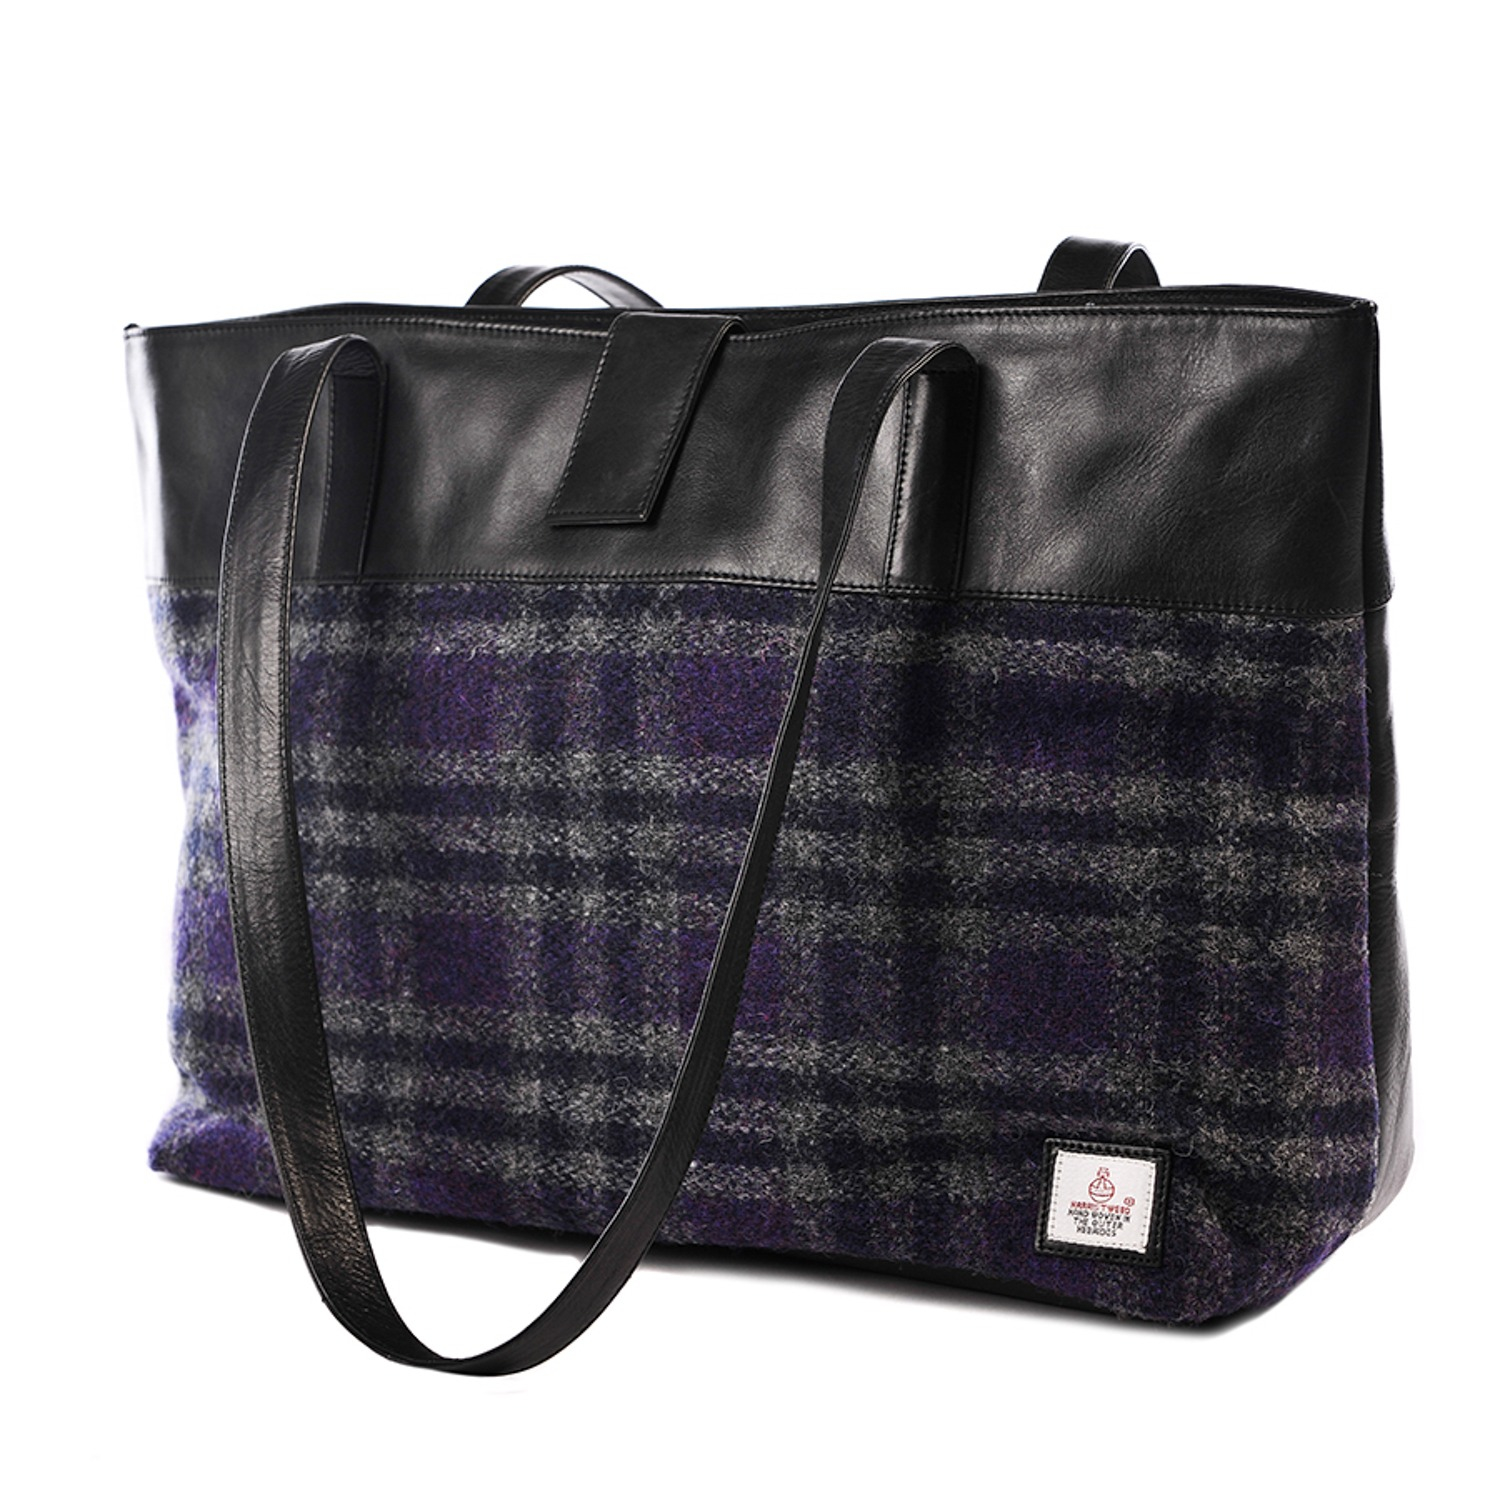 286aaeabe6b1 Lyst - Maccessori Purple Harris Tweed Tote Bag in Blue